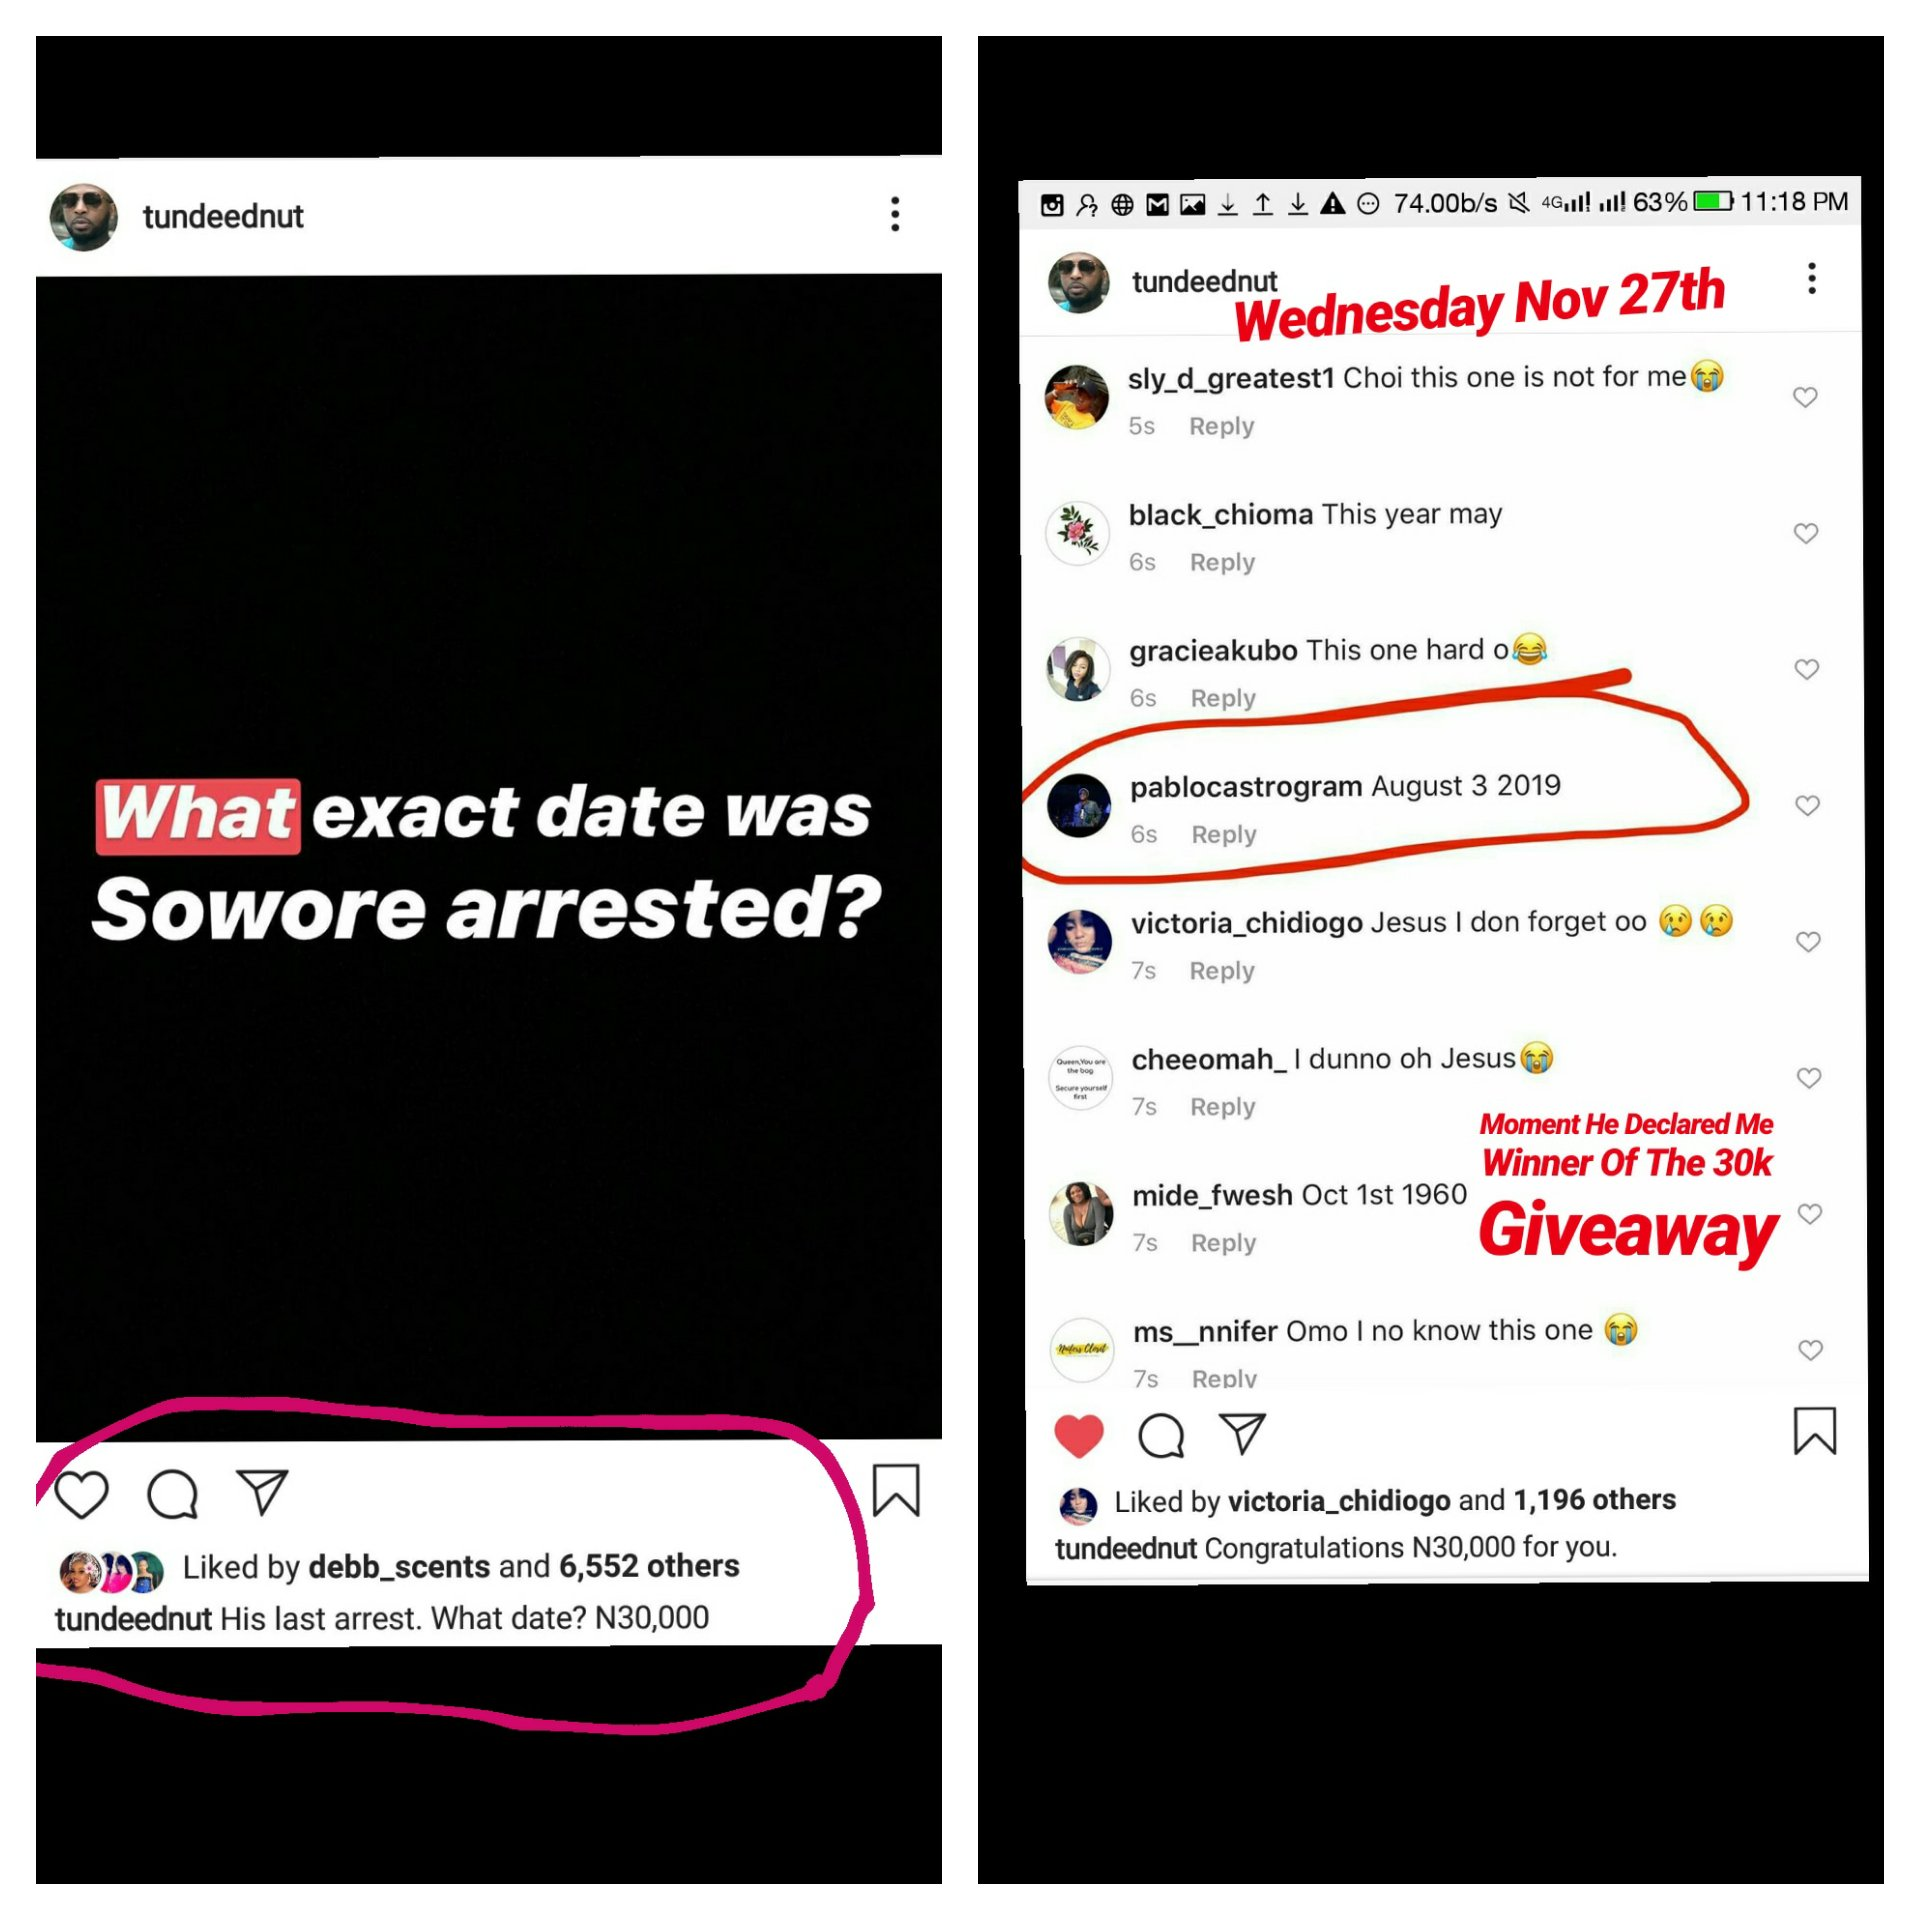 Tunde Ednut Giveaway Is A Scam Man Narrates How He Won But Was Cursed And Blocked Akahi News You can perform both of these actions in the instagram app for smartphones as well as on the instagram website. akahi news